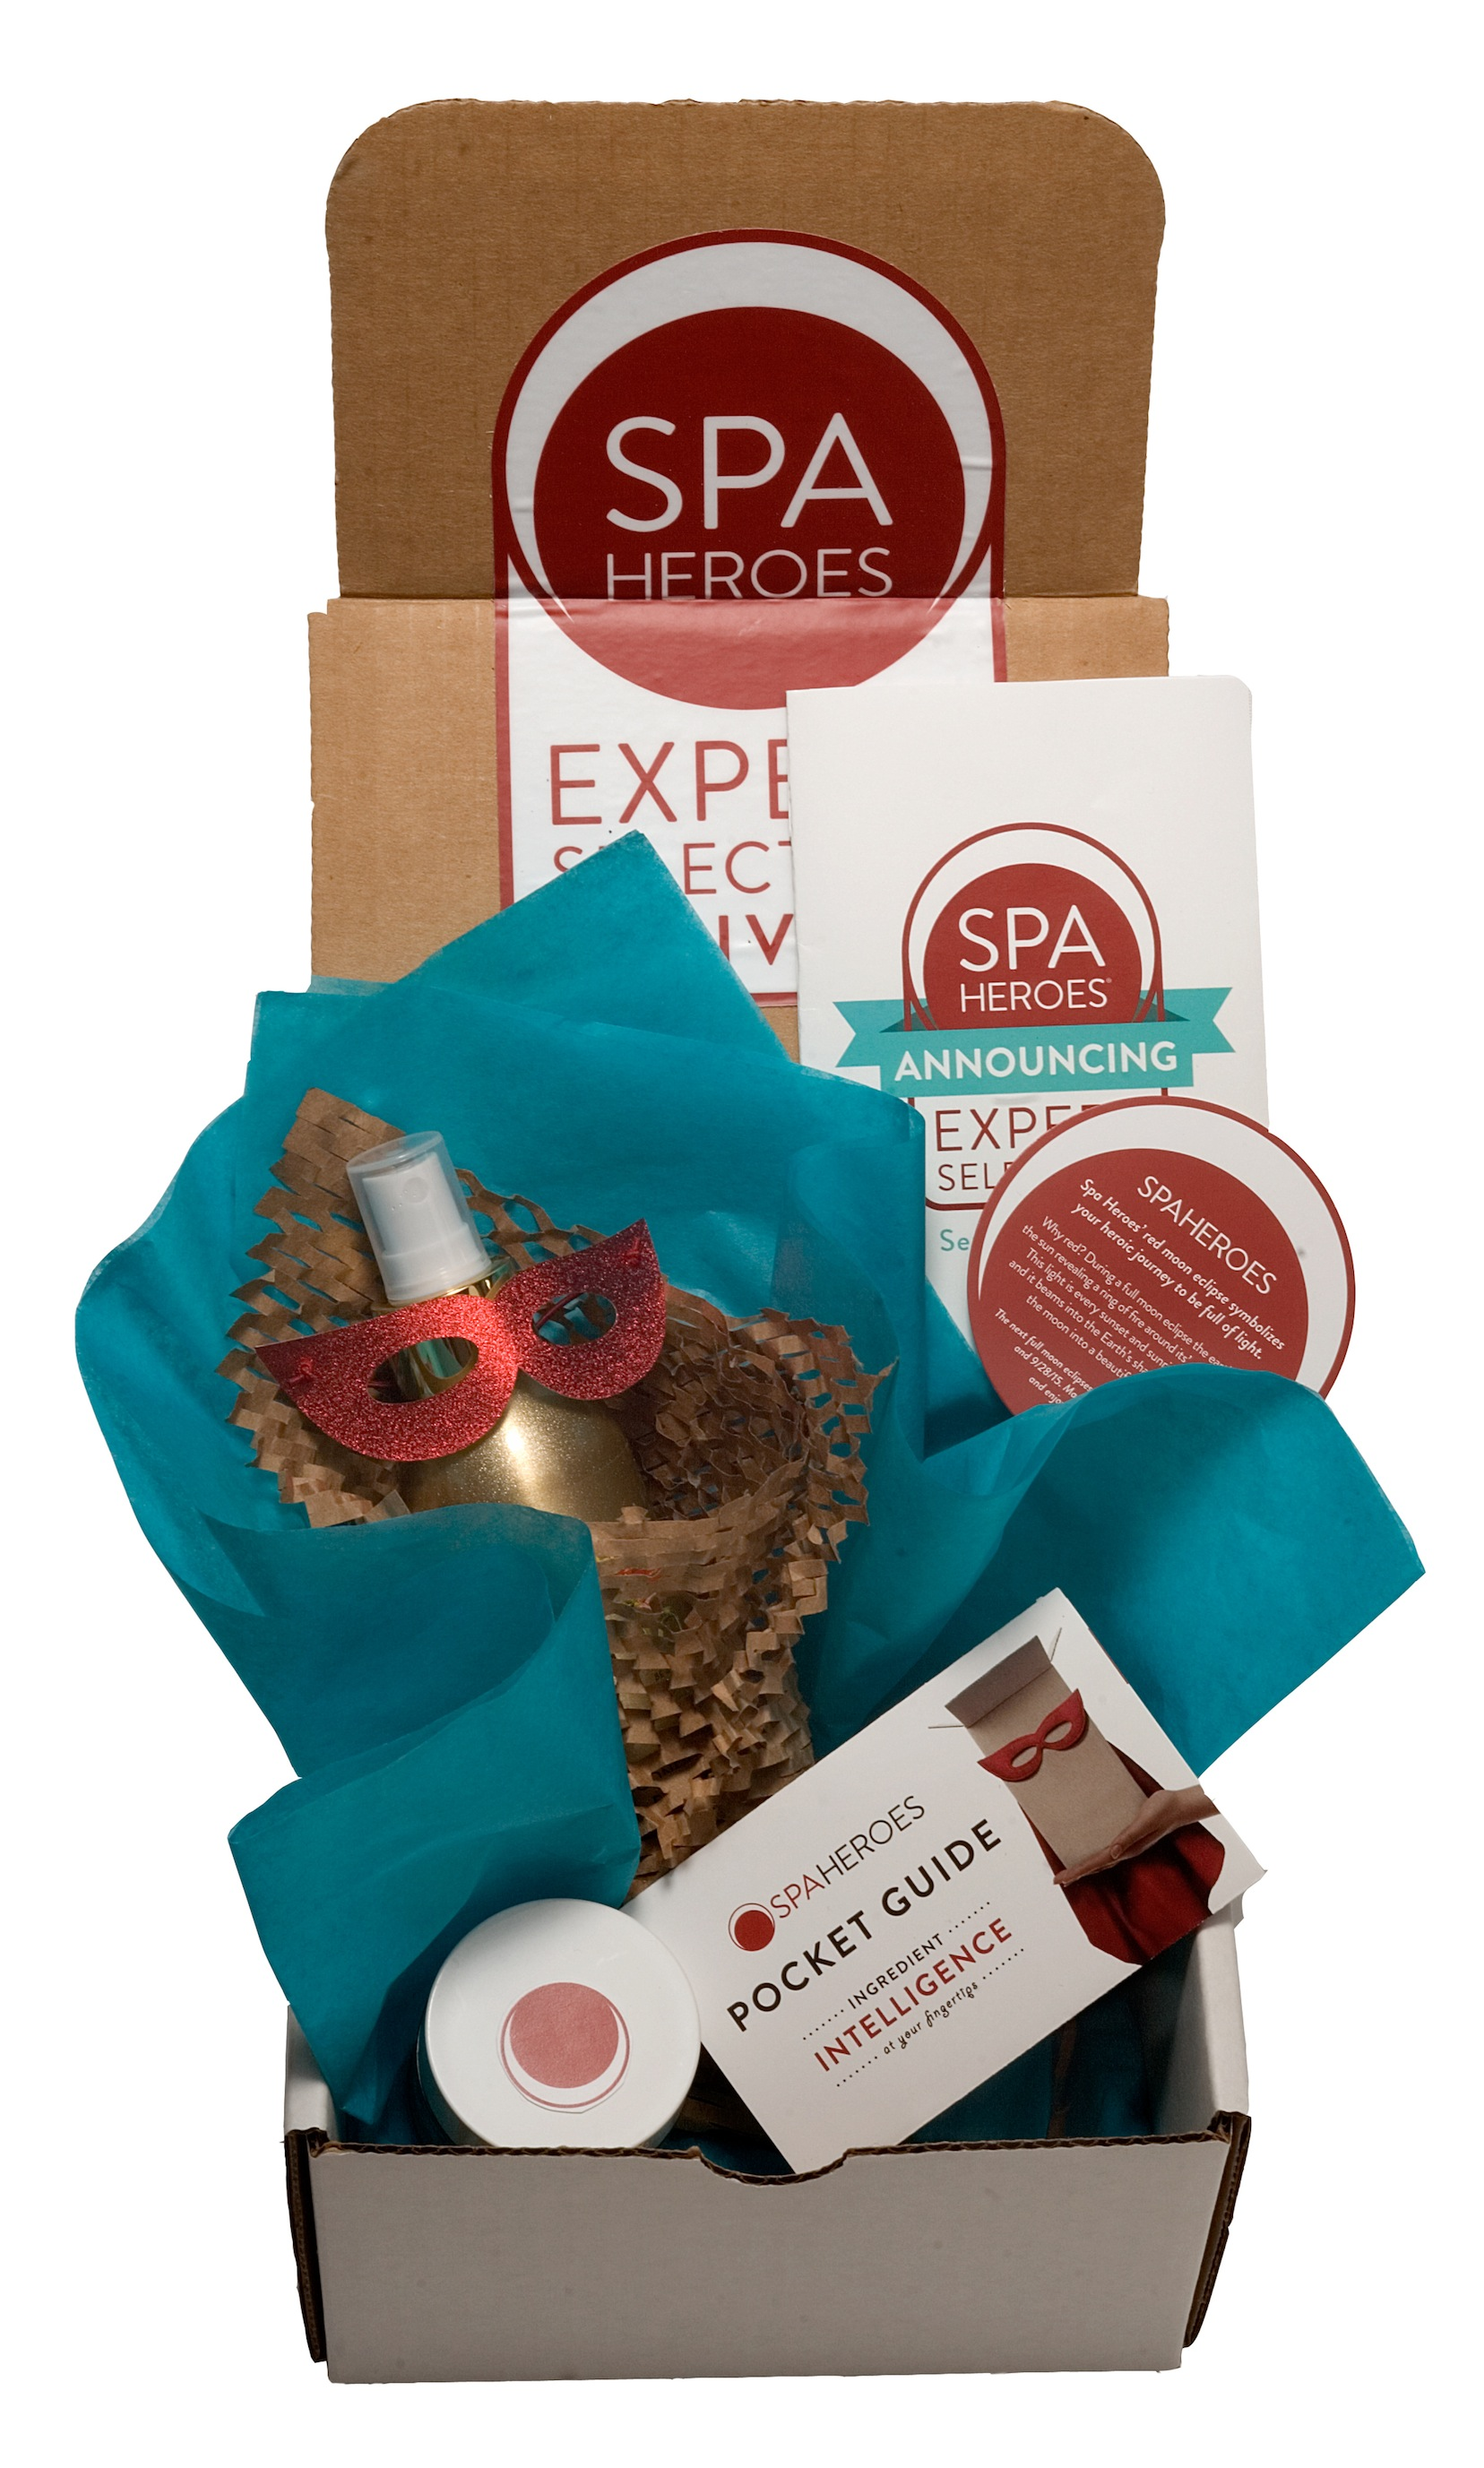 Spa Heroes beauty subscription service: Full-size products!